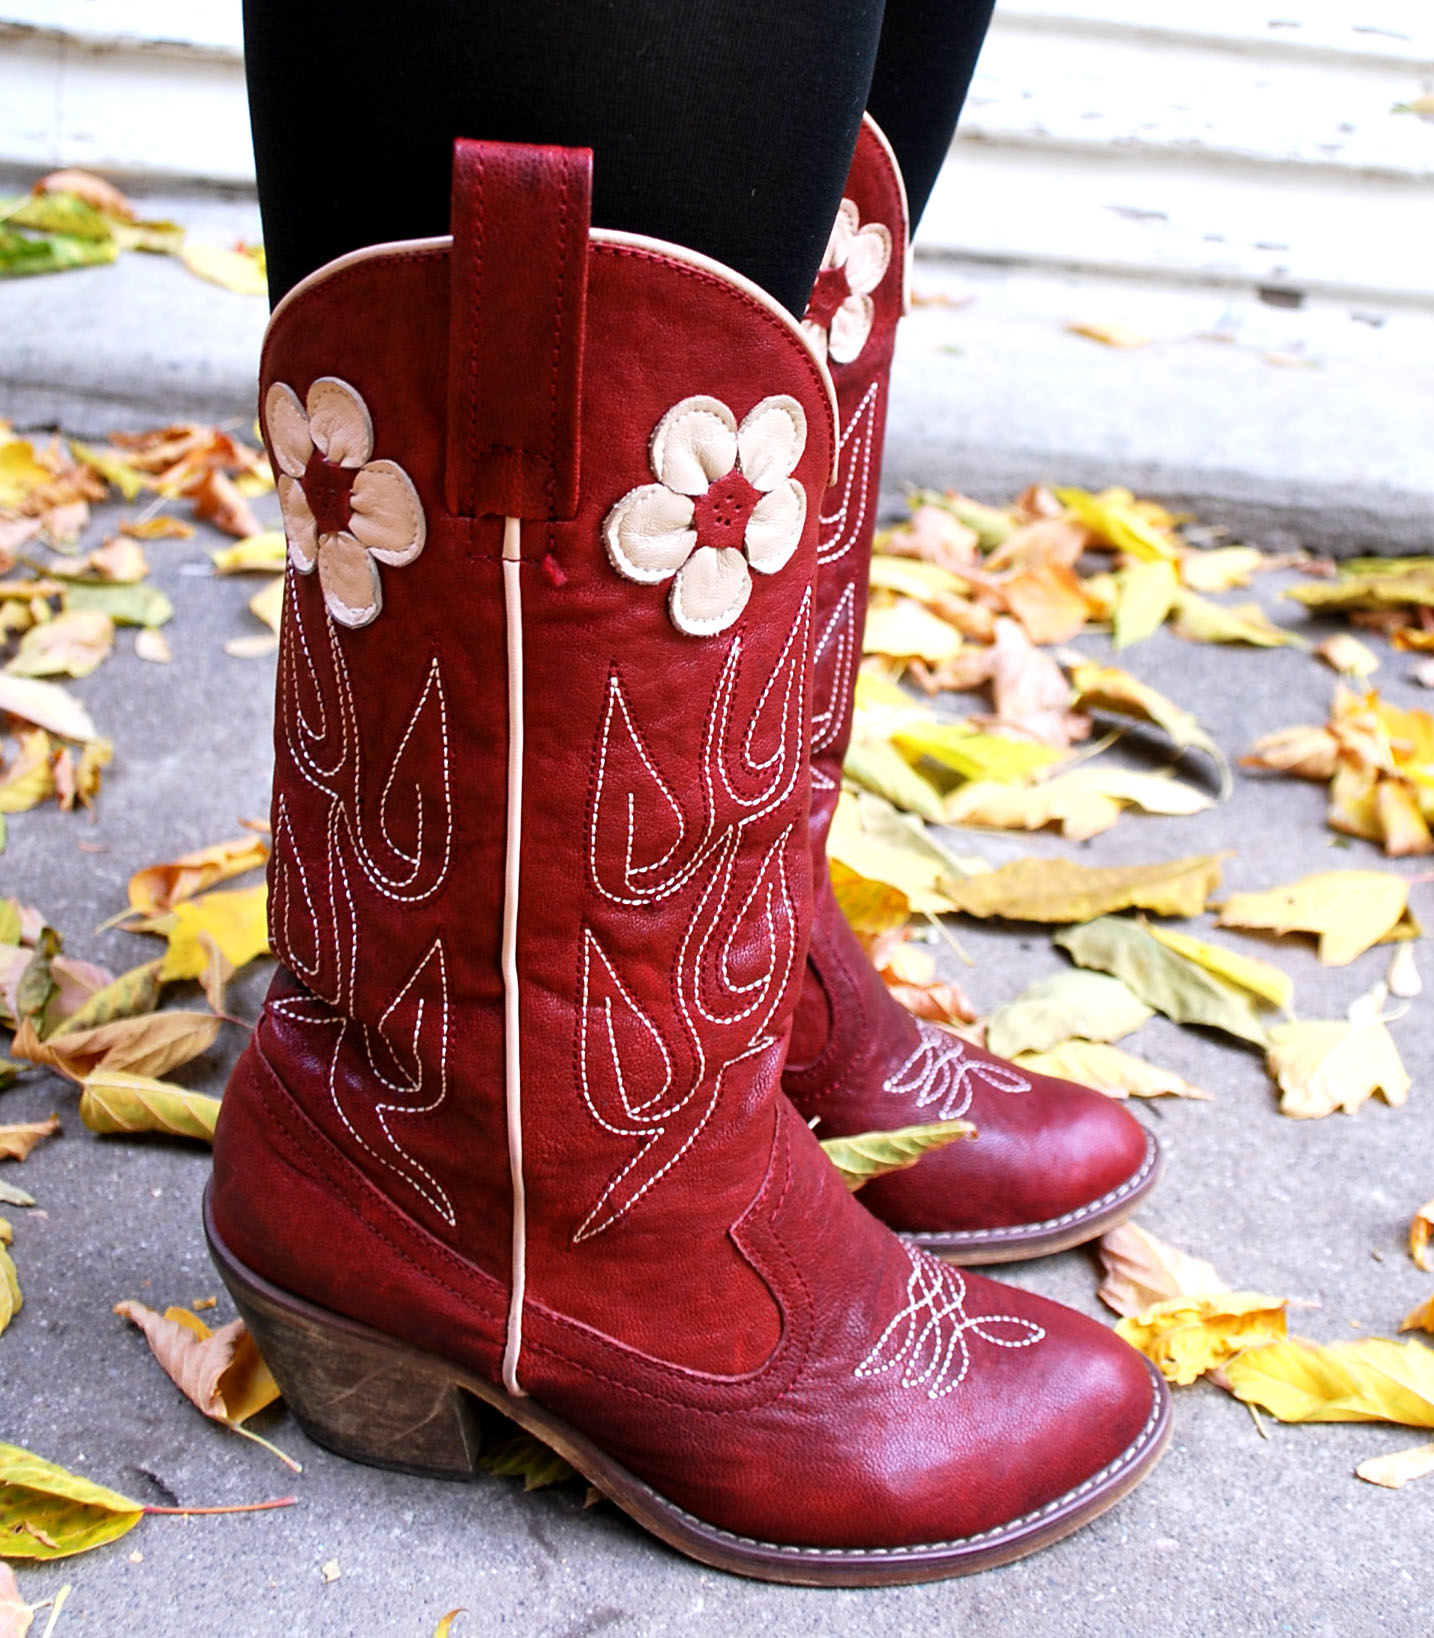 Similiar Red Boots For Girls Keywords